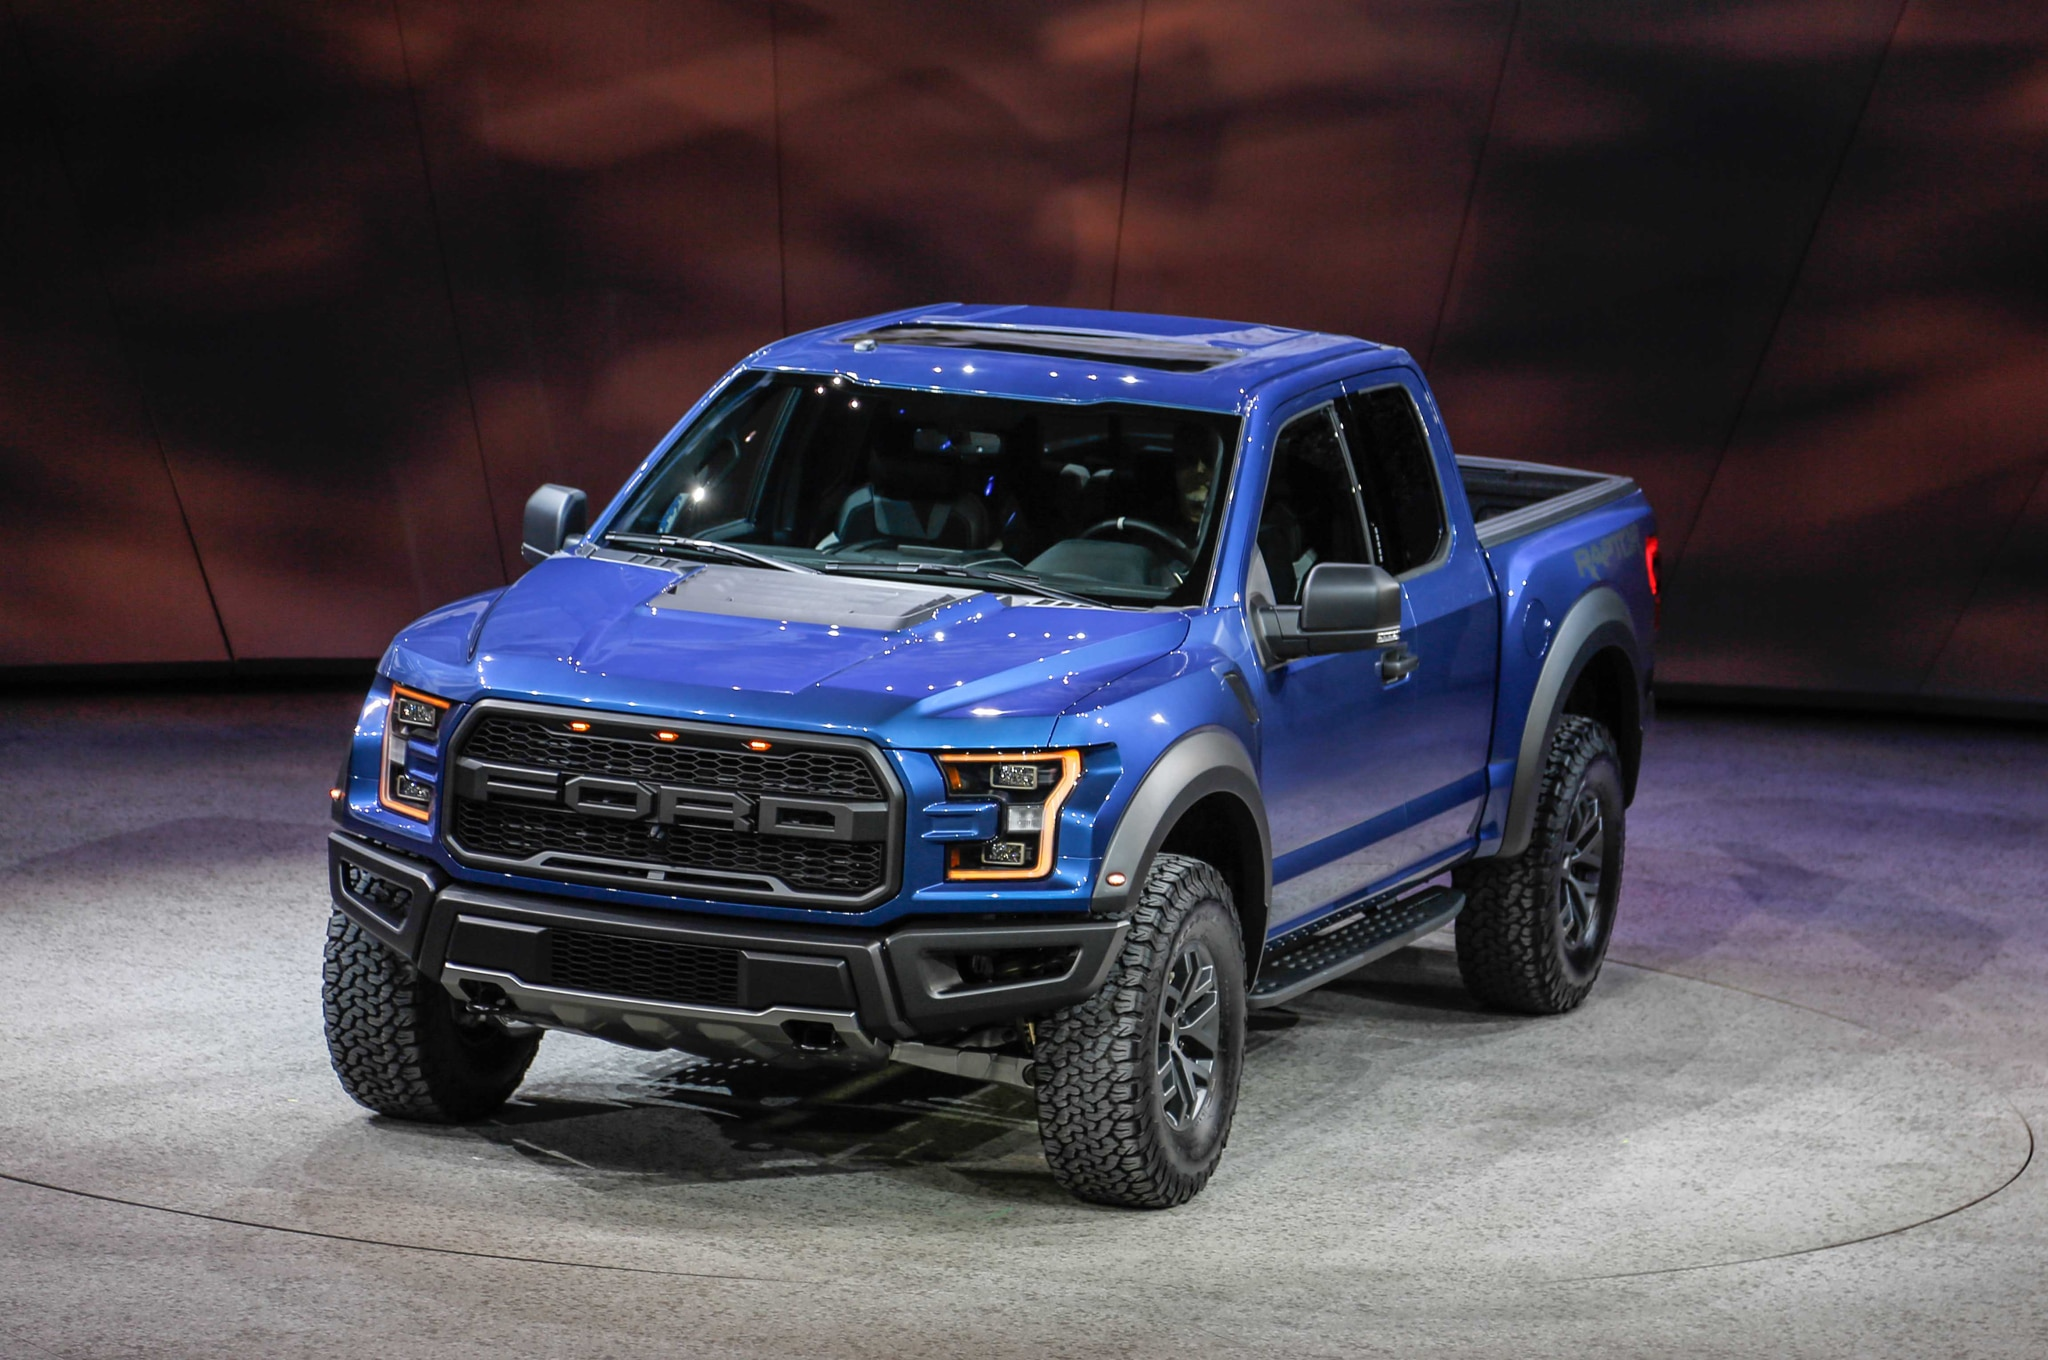 Is the 2016 Ford F-150 SVT Raptor Coming Soon? - Four Wheeler